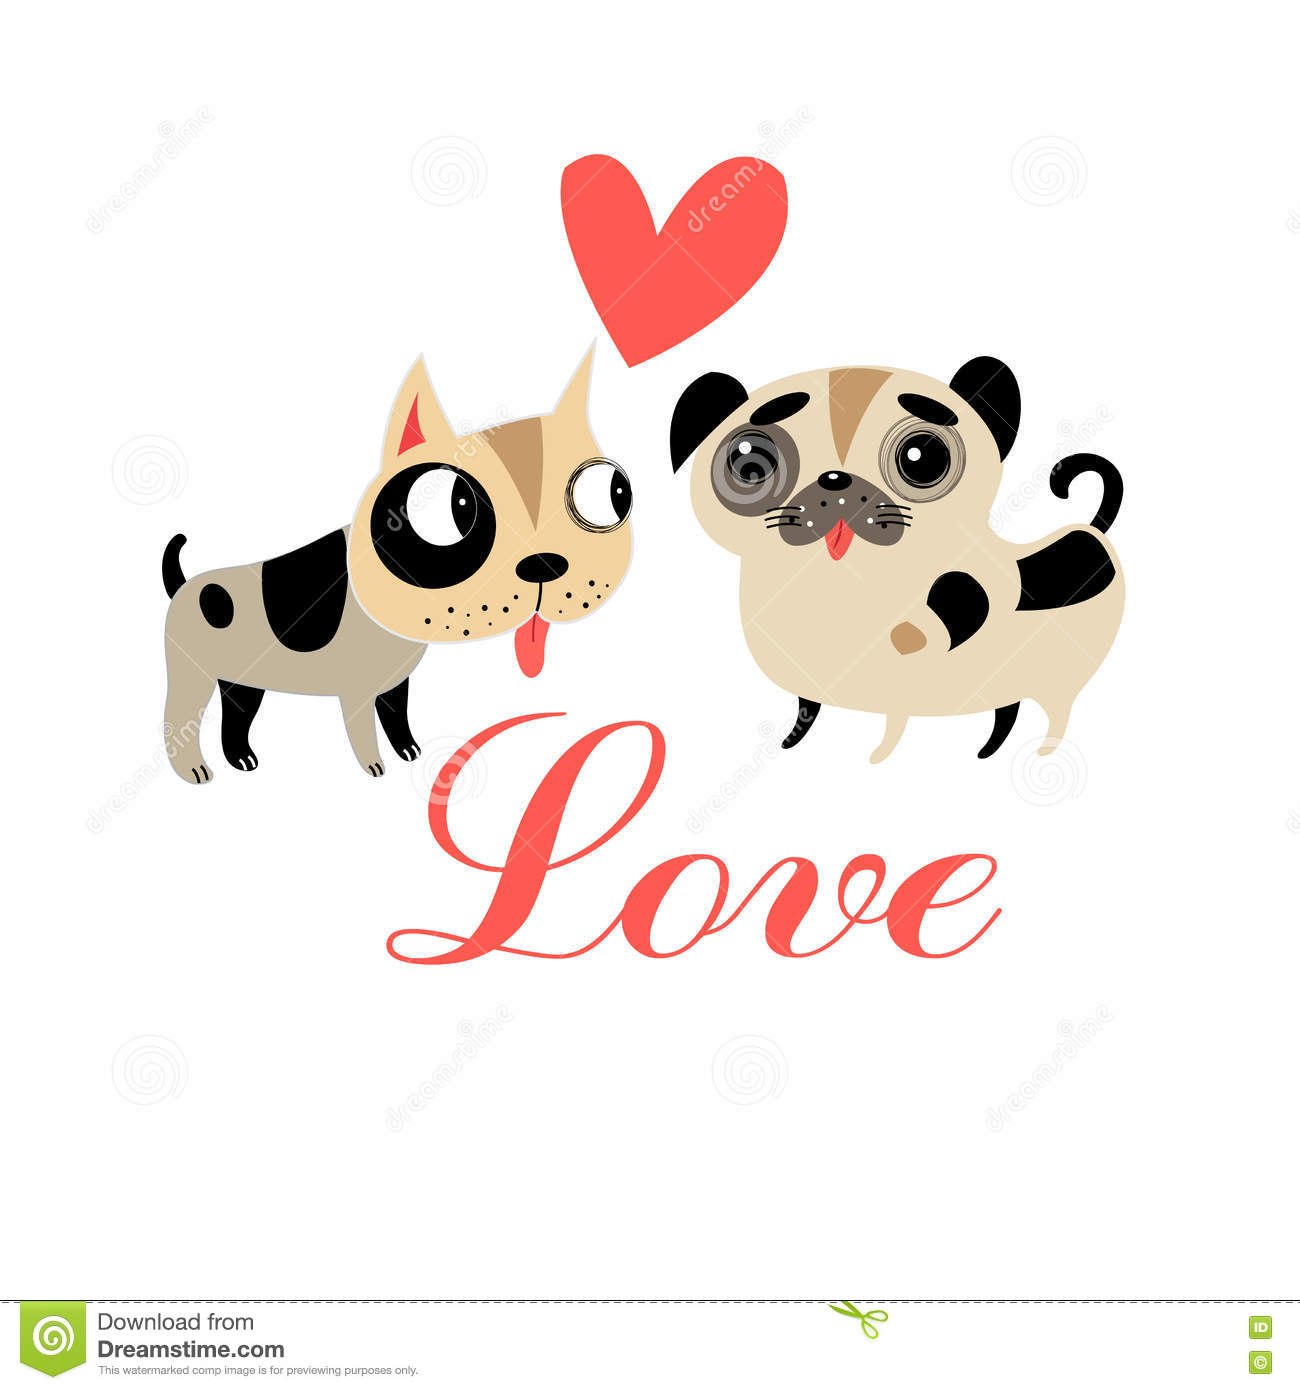 Lovers Graphics Funny Puppies Stock Vector - Illustration of line